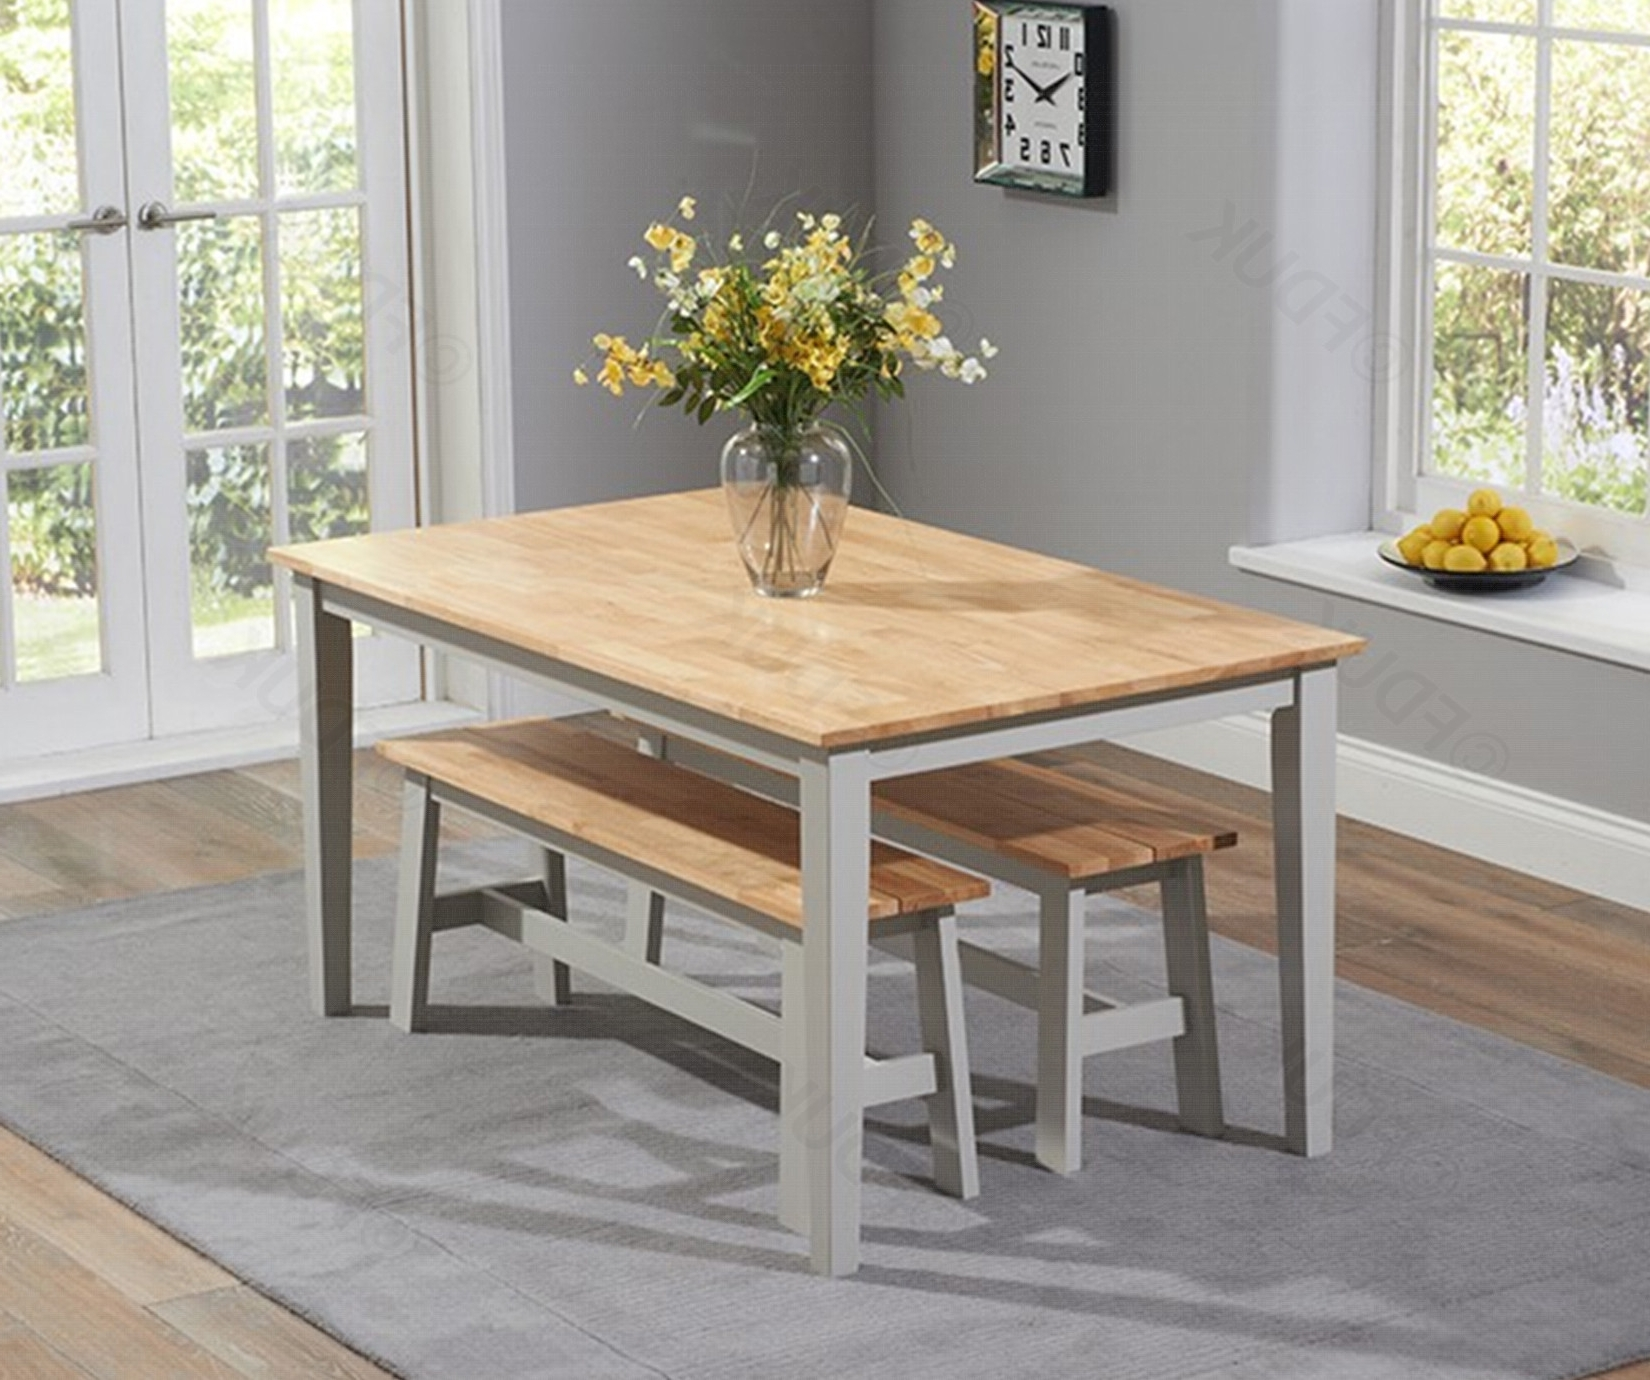 Chichester Dining Tables With Regard To Most Up To Date Mark Harris Chichester (View 8 of 25)